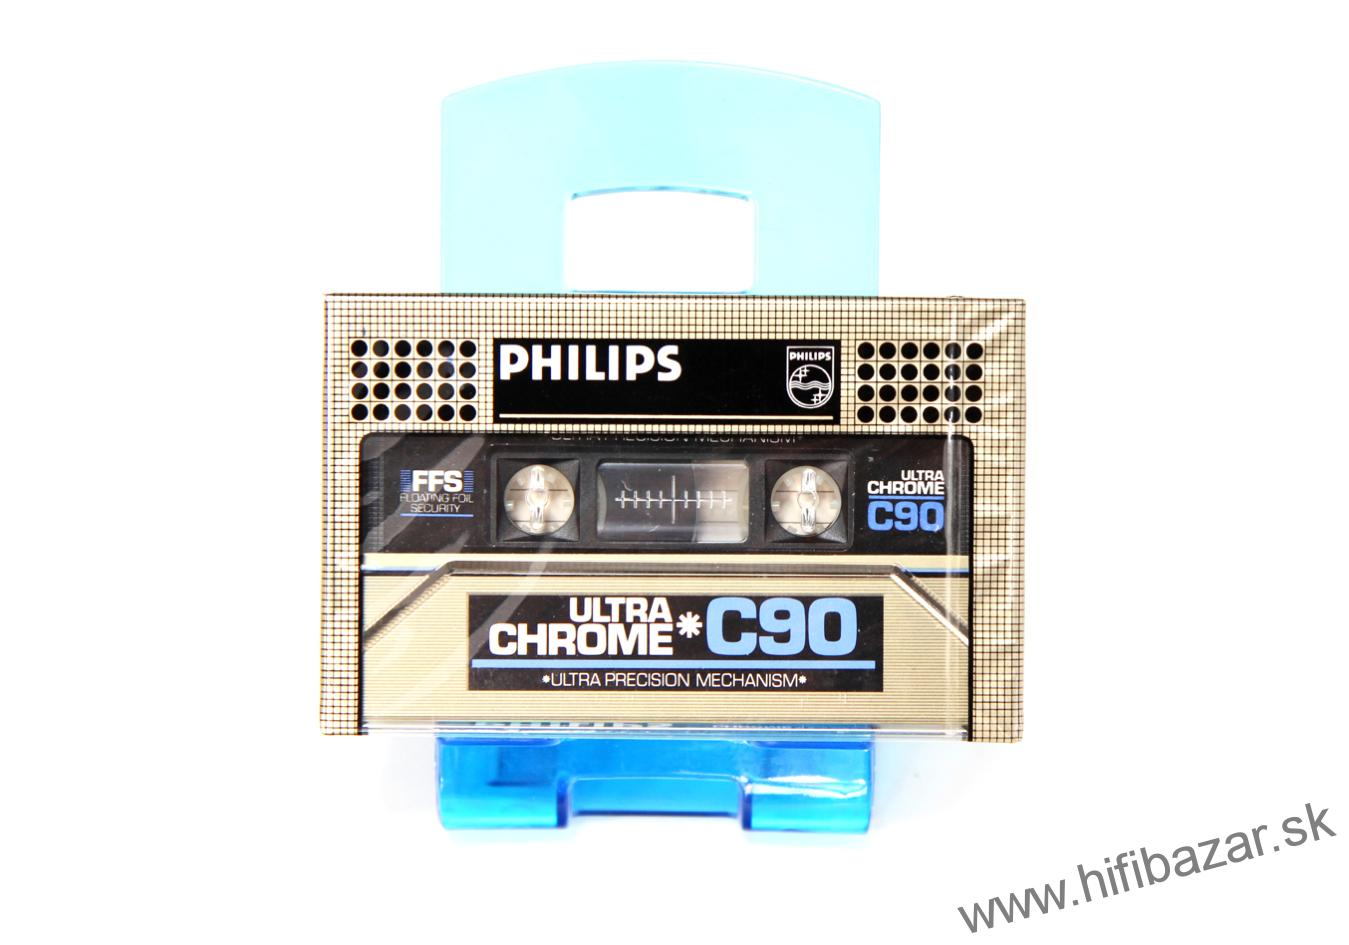 PHILIPS C-90 Ultra Chrome